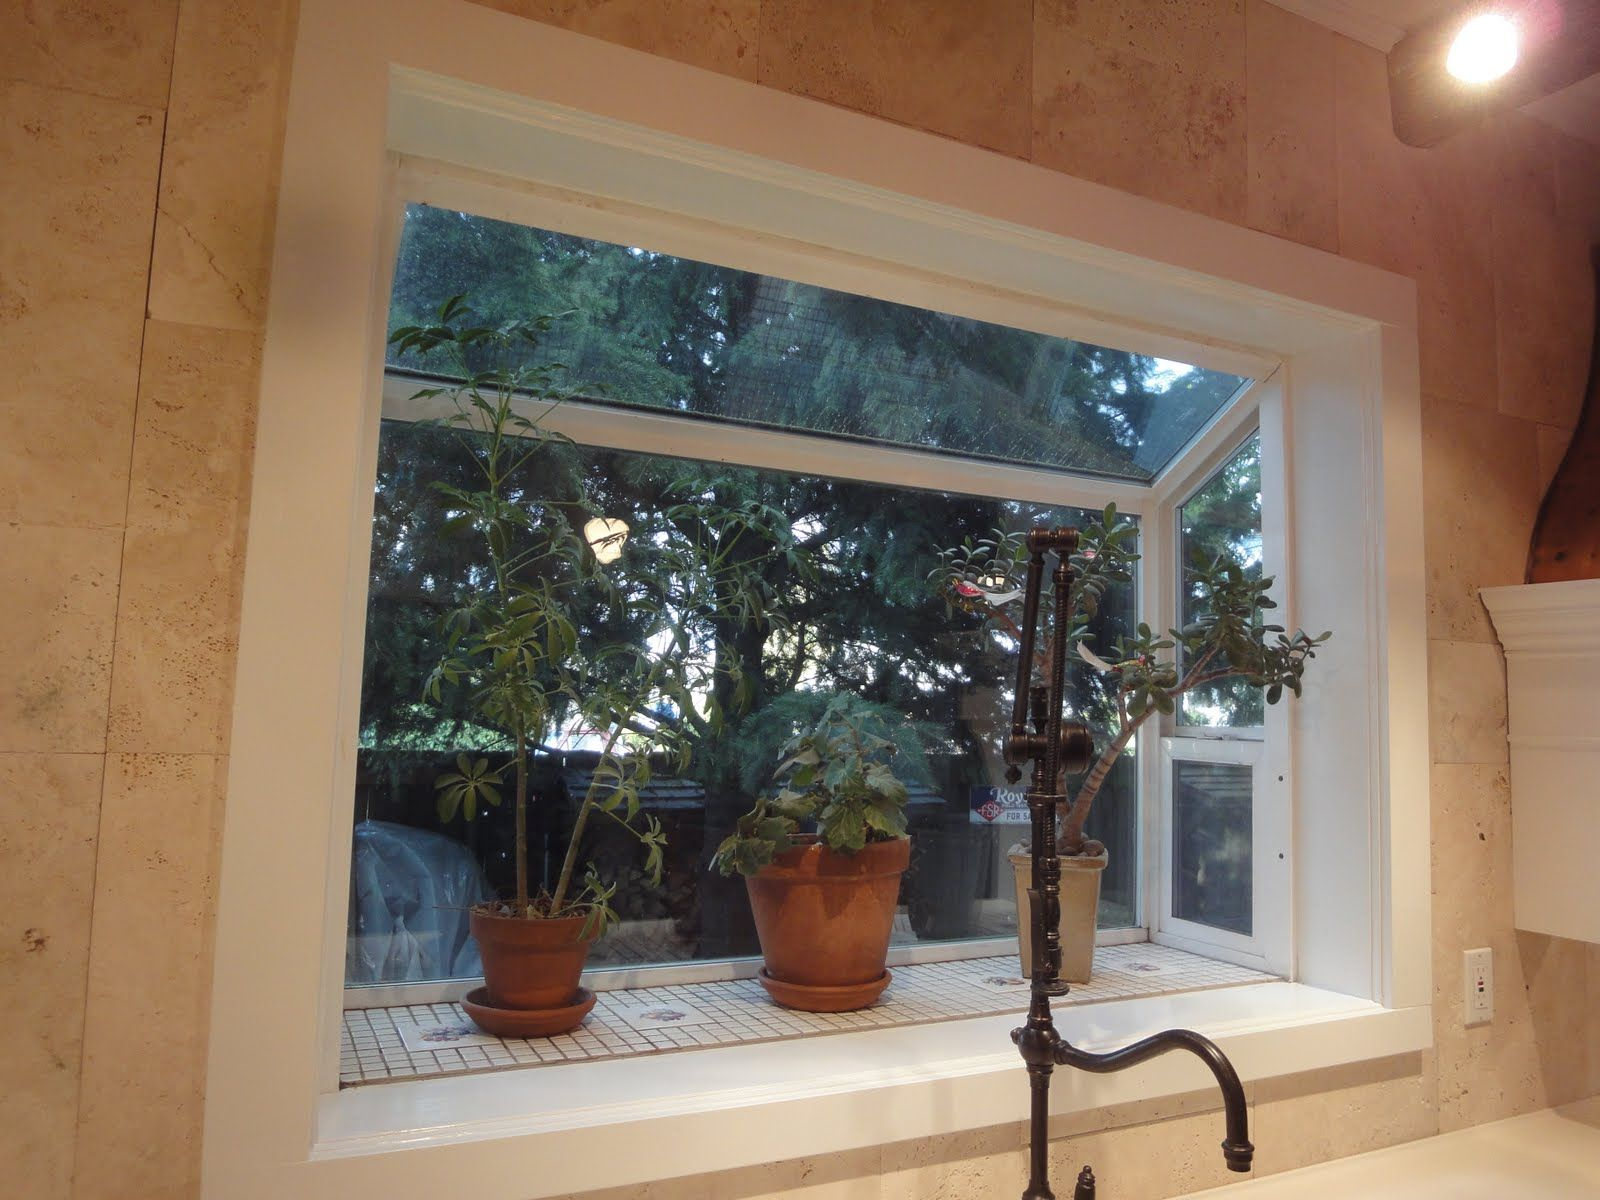 Image Result For Bump Out Kitchen Window Kitchen Window Kitchen Garden Window Kitchen Window Treatments